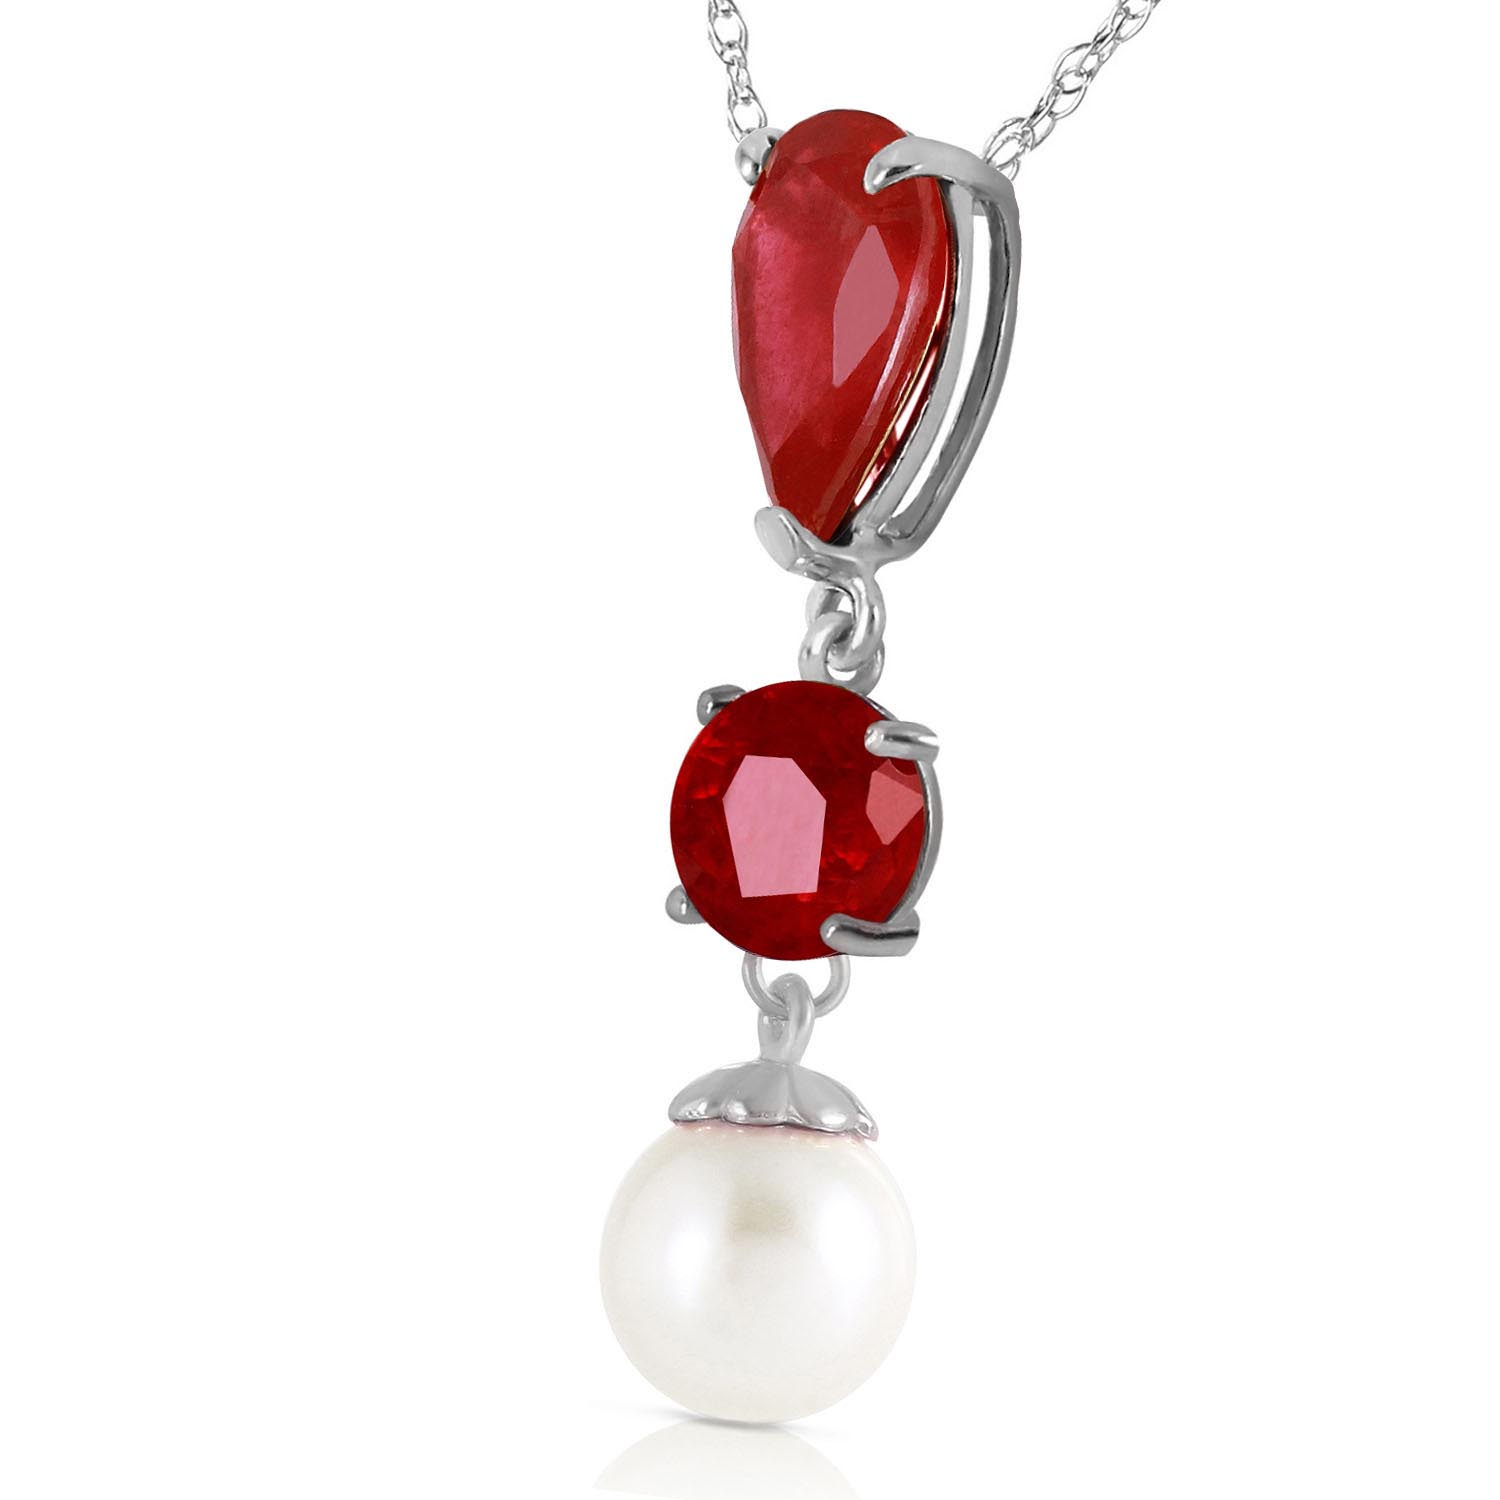 Ruby and Pearl Hourglass Pendant Necklace 1.5ct in 14K White Gold